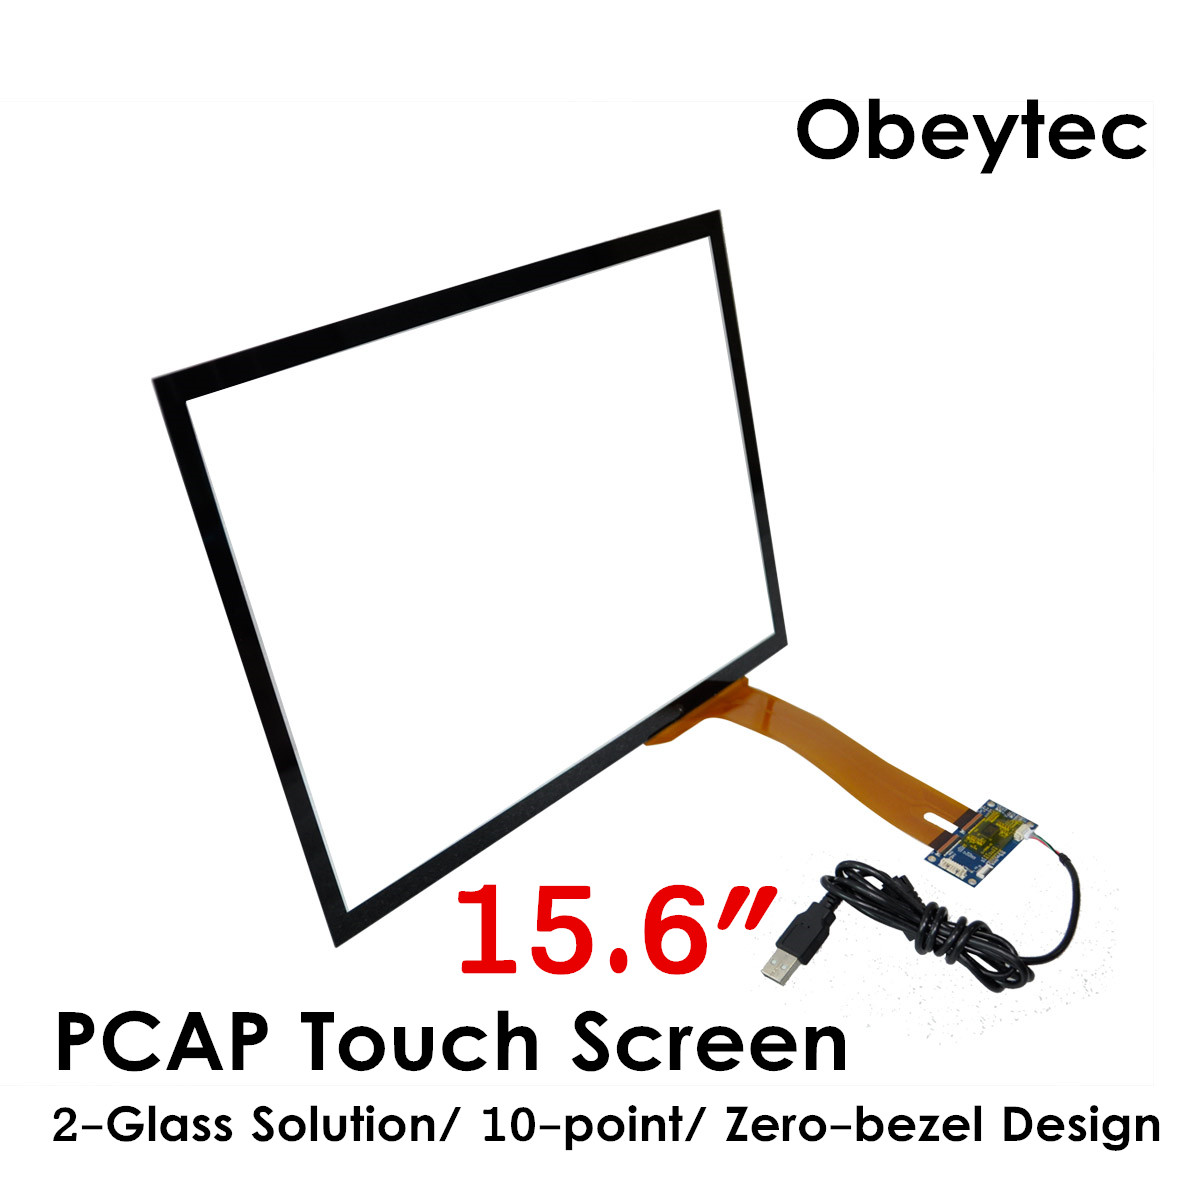 Écran tactile Obeytec 15.6 pouces P-CAP, capteur tactile capacitif, pilote USB plug and play, solution 2 verres, 10 points tactiles